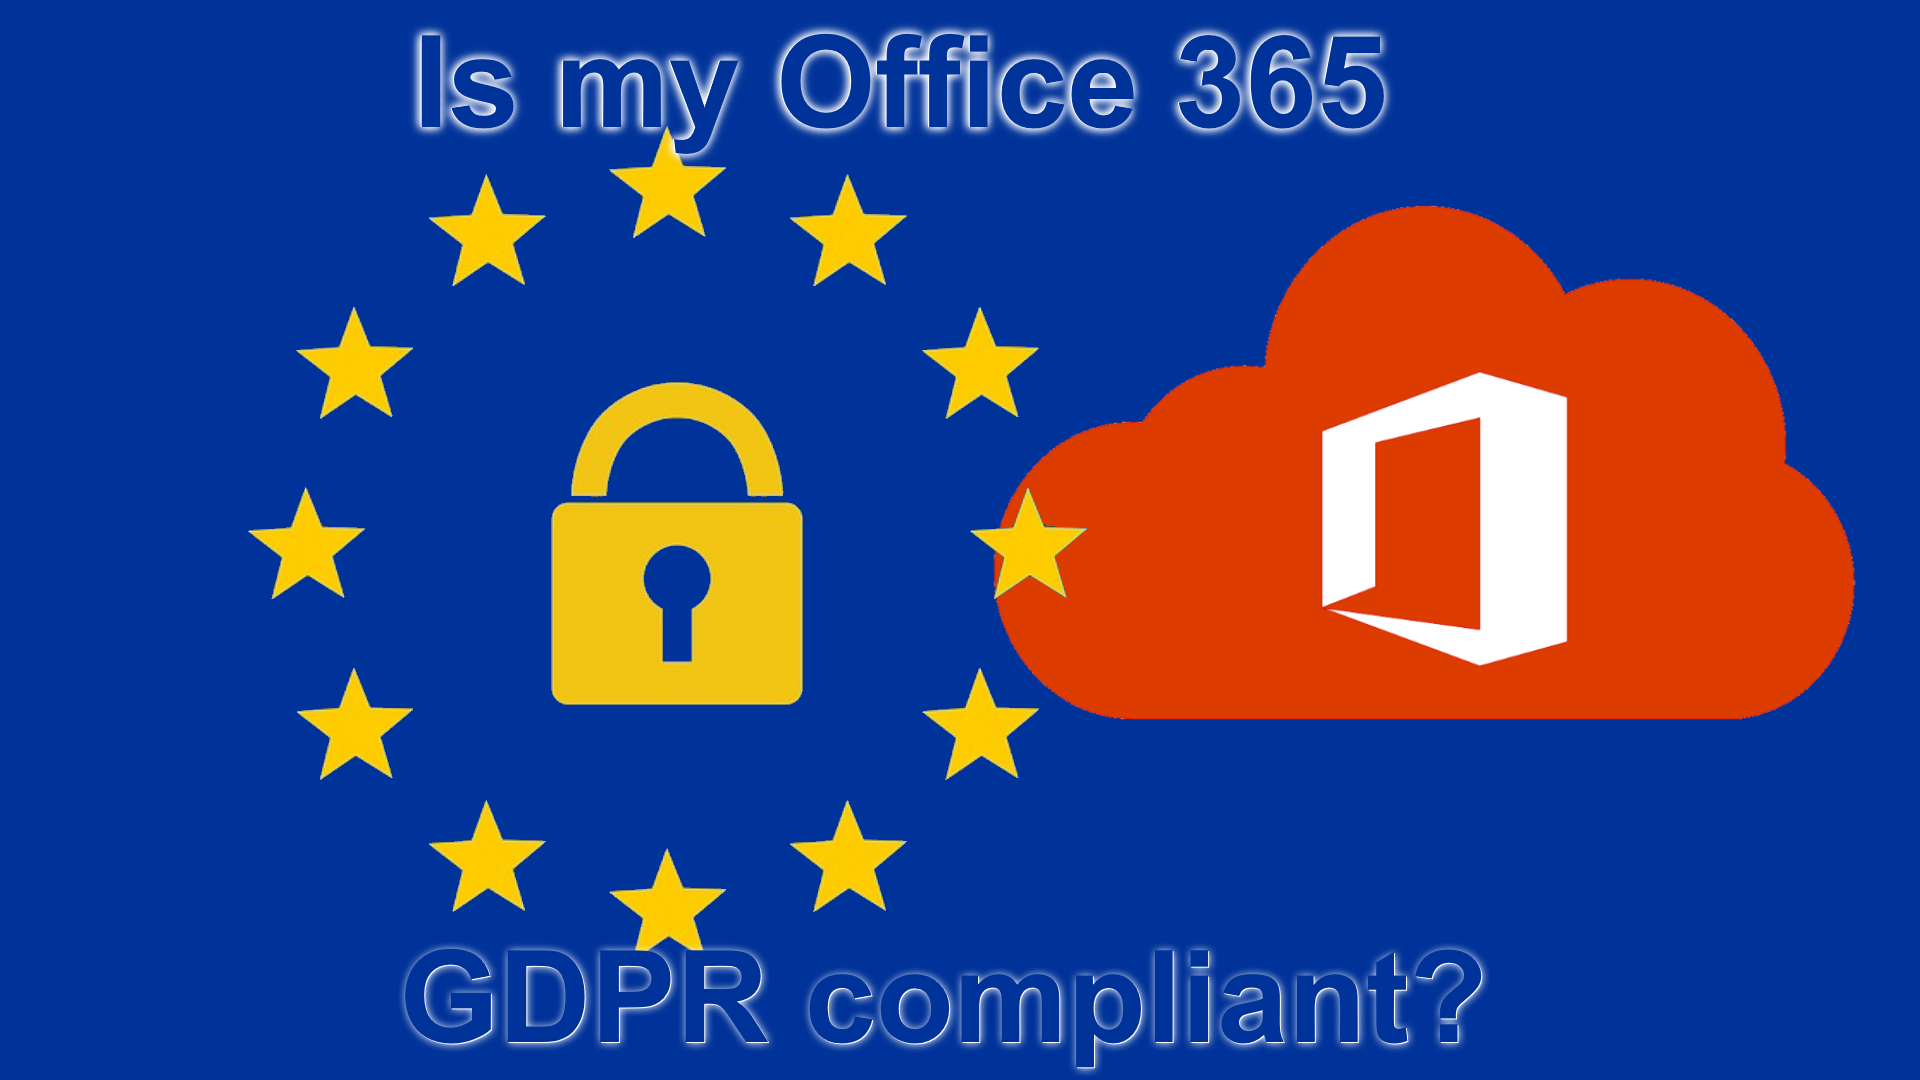 Is my Office 365 GDPR compliant?